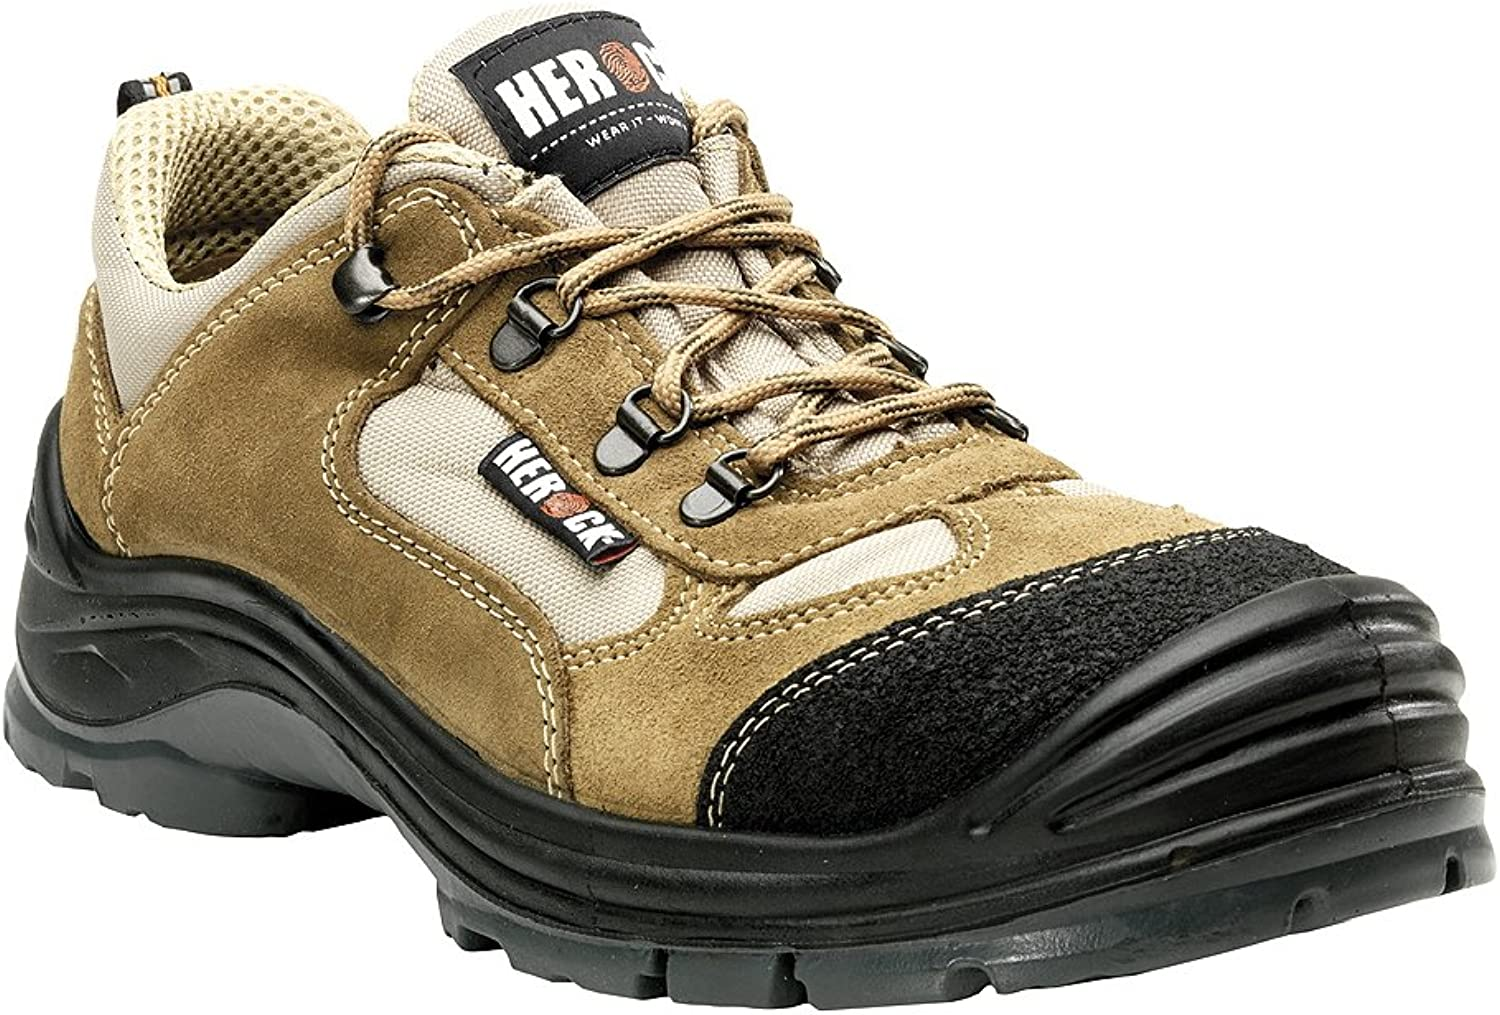 Cross Compo S1P Low shoes - Safety shoes Soul Rebel Footwear